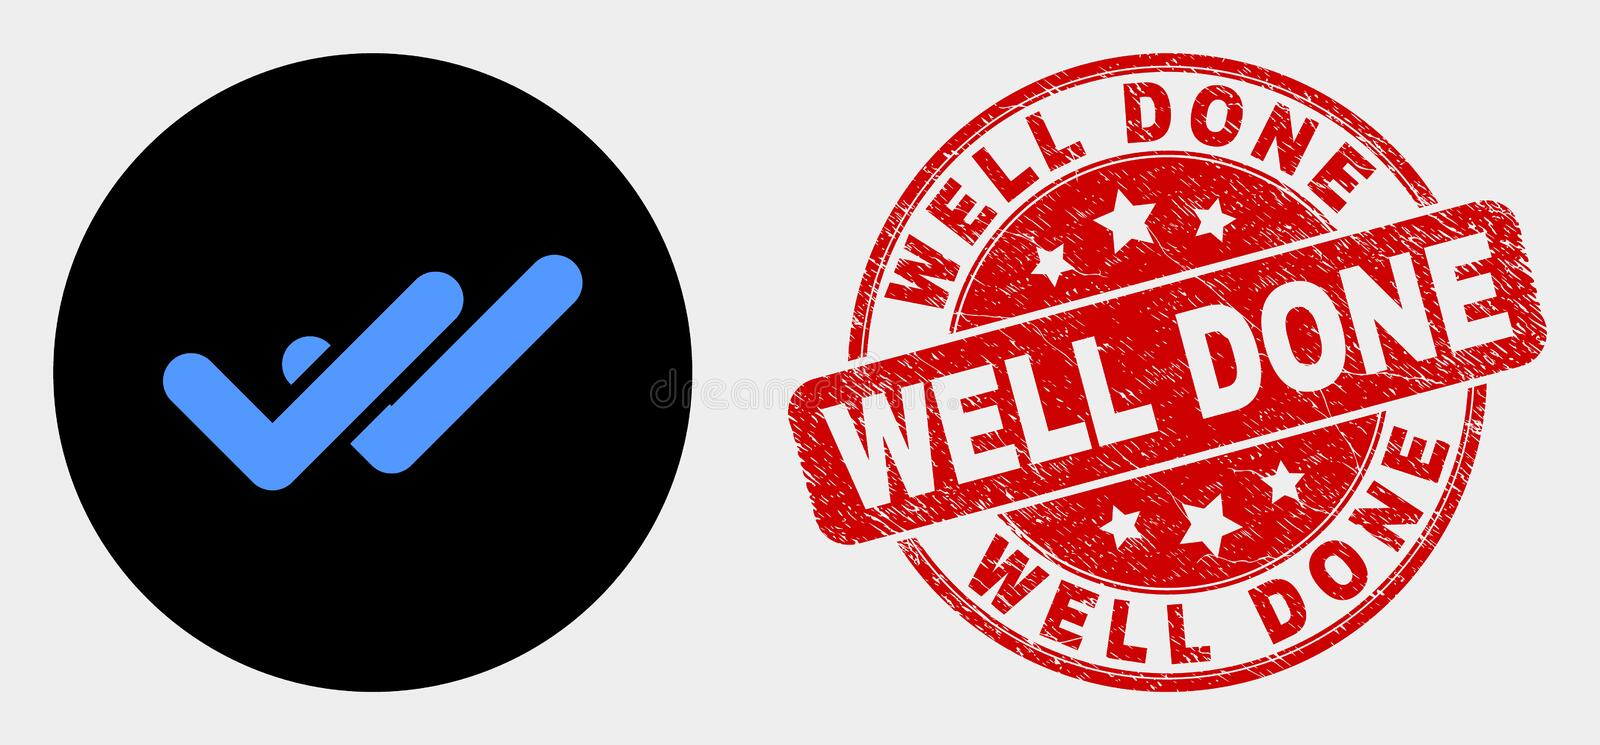 Vector Valid Ticks Icon and Distress Well Done Seal. Rounded valid ticks pictogram and Well Done seal stamp. Red rounded distress seal stamp with Well Done text royalty free illustration